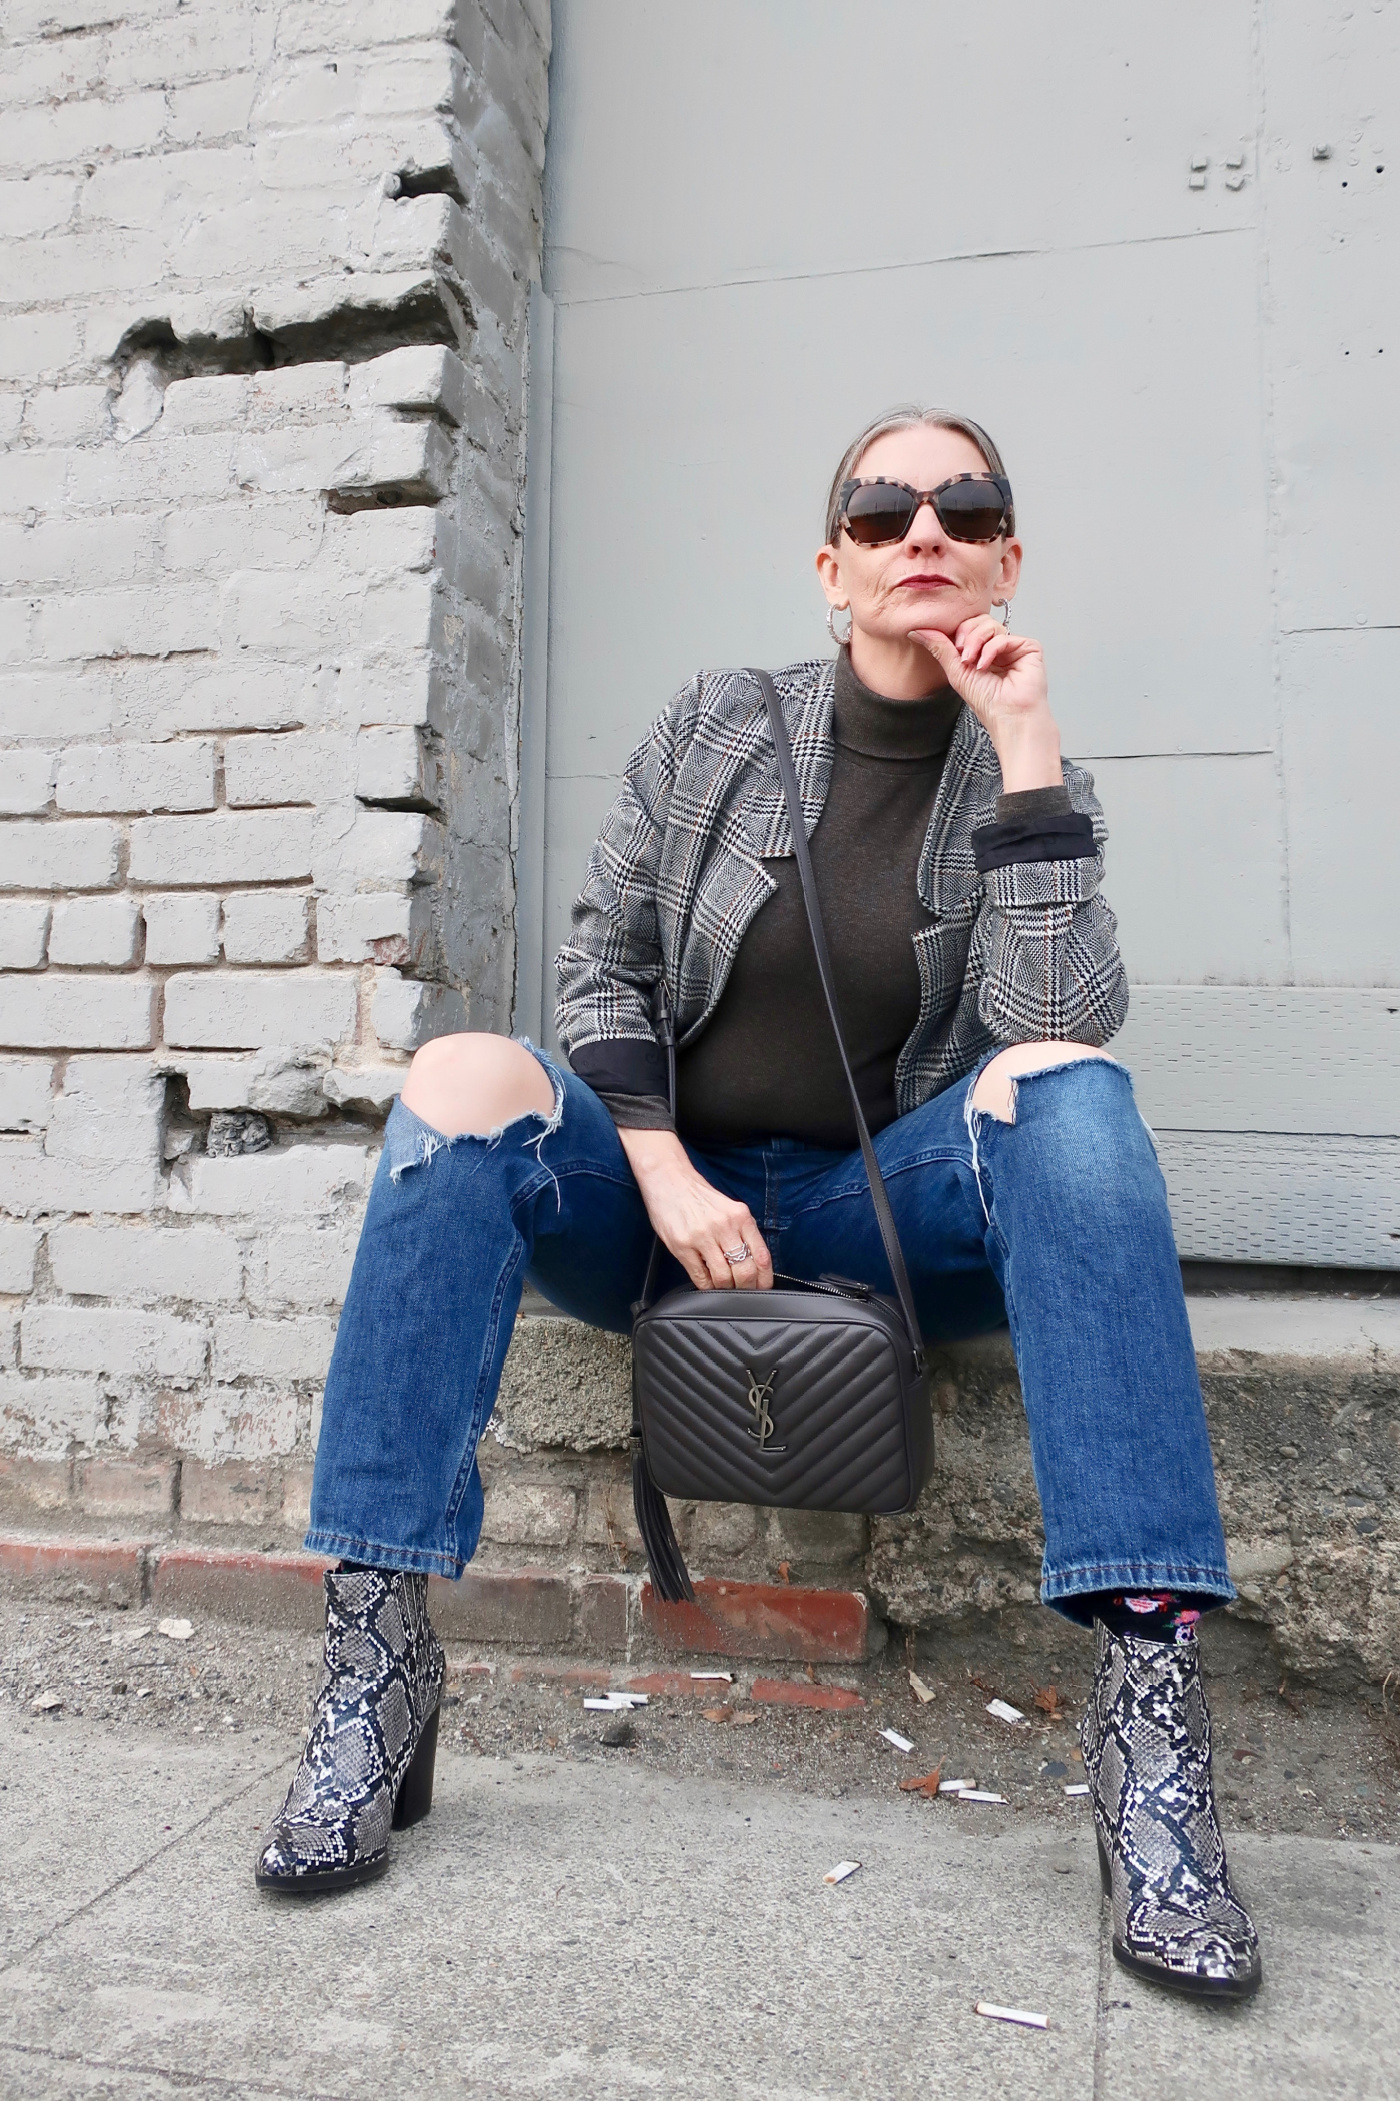 Classic style with an edgy, outfit ideas for women over 50